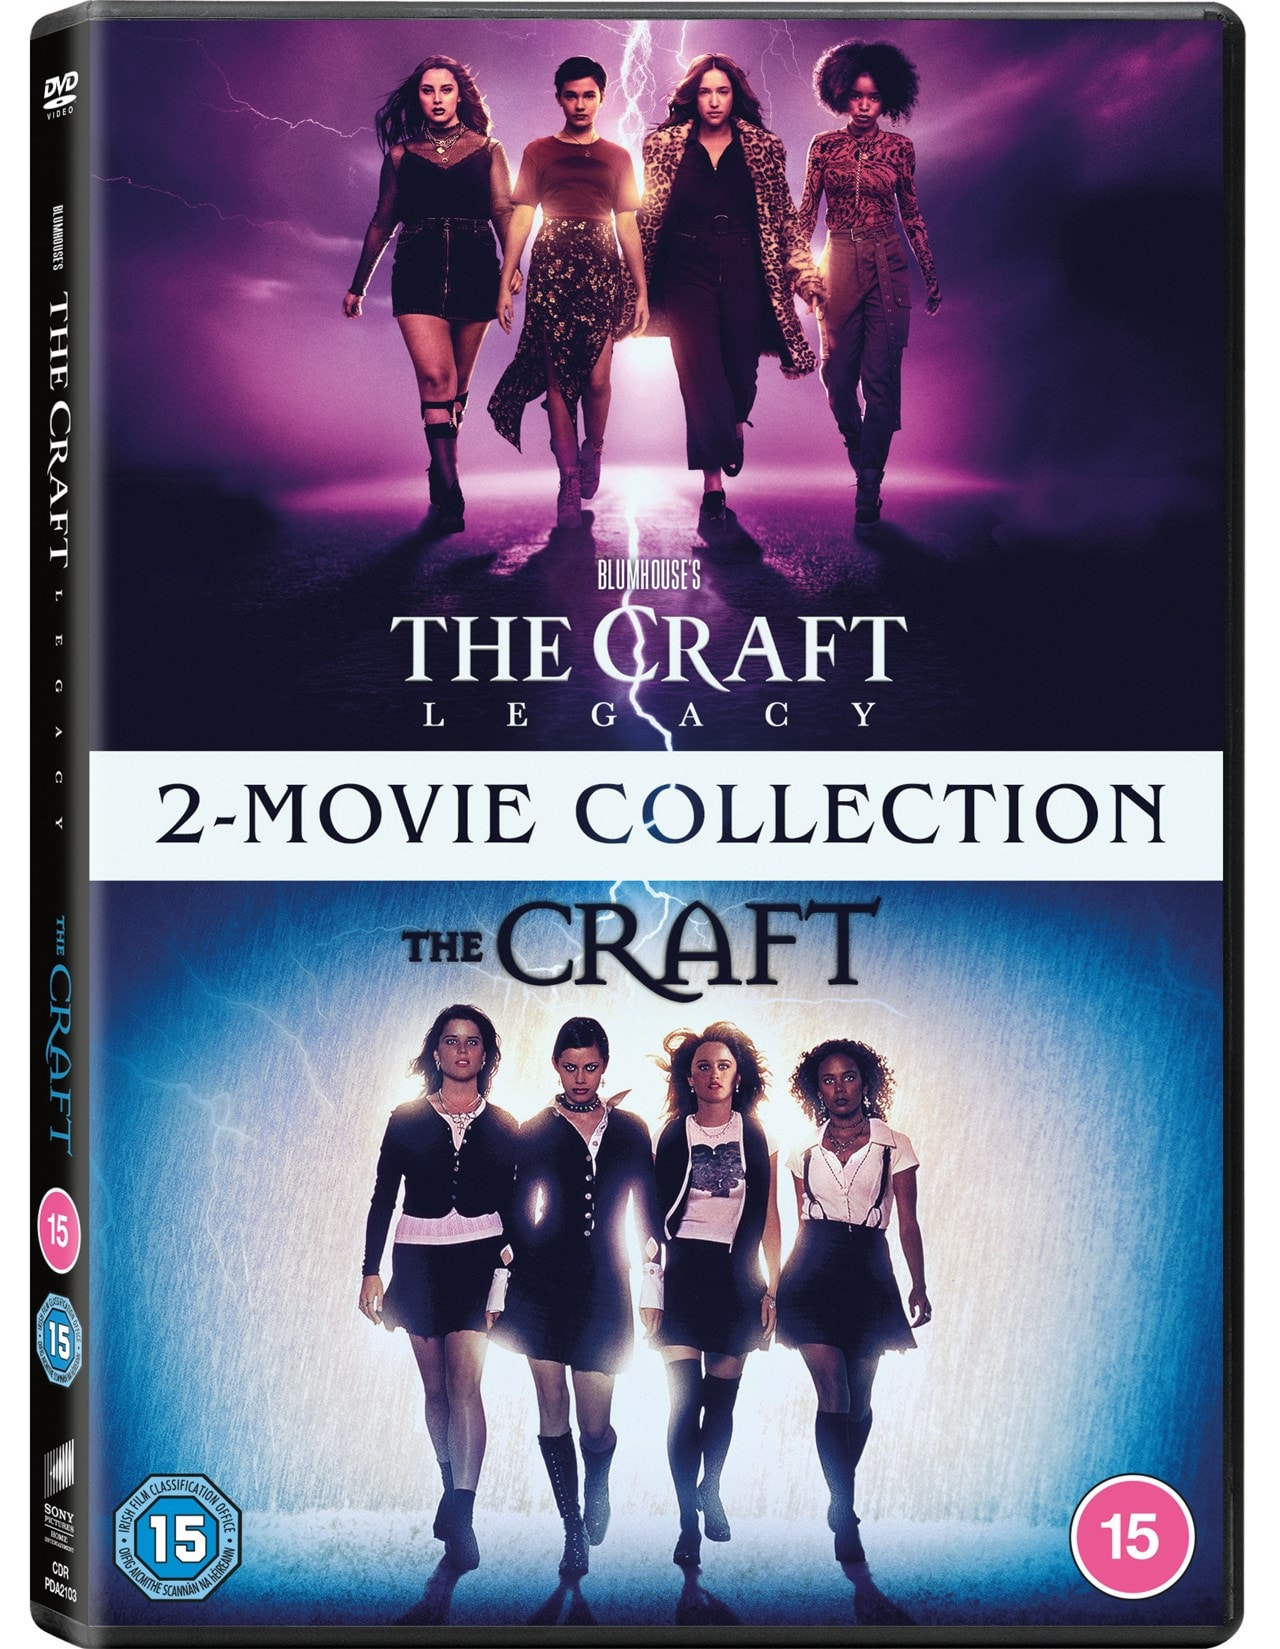 The Craft/Blumhouse's The Craft - Legacy - 2